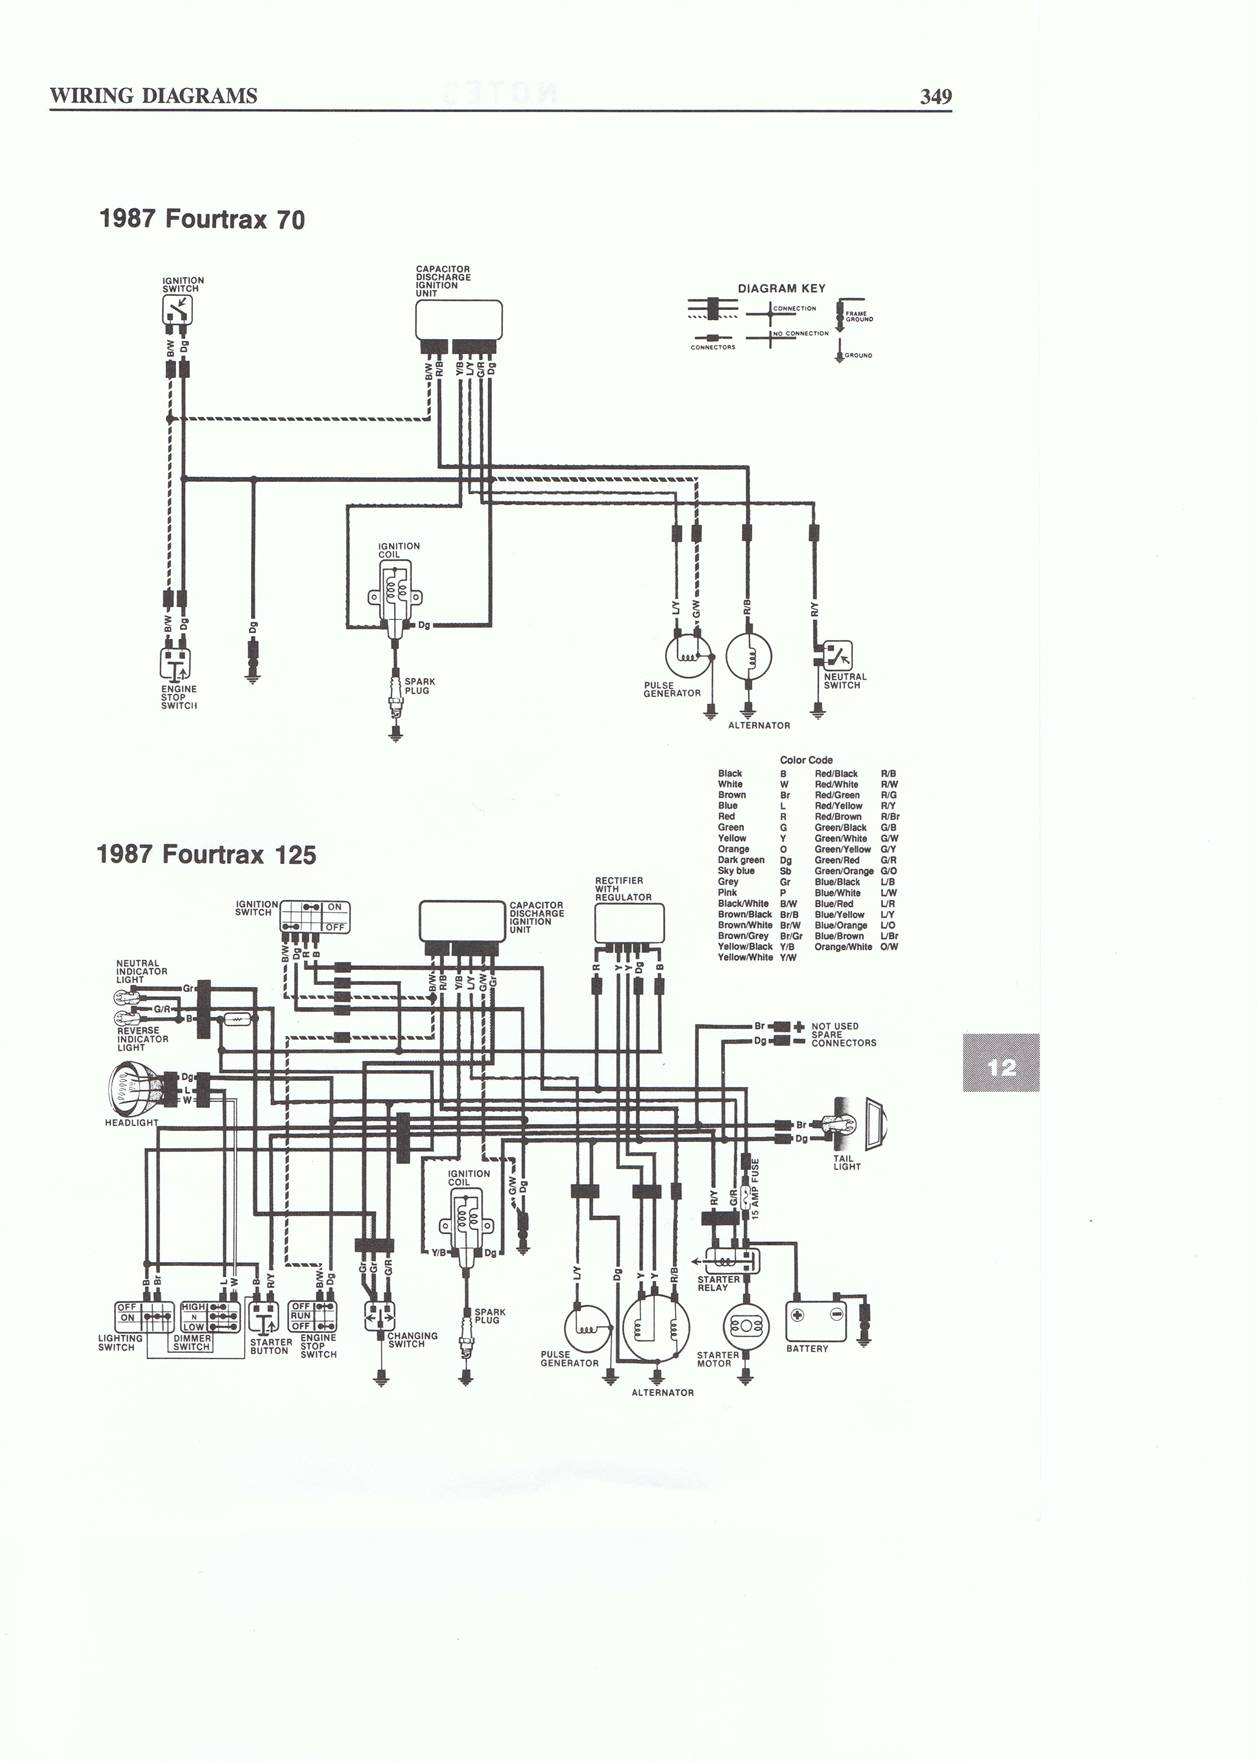 gy6 engine wiring diagram?t=1398725710 gy6 engine wiring diagram engine wiring diagram at bakdesigns.co